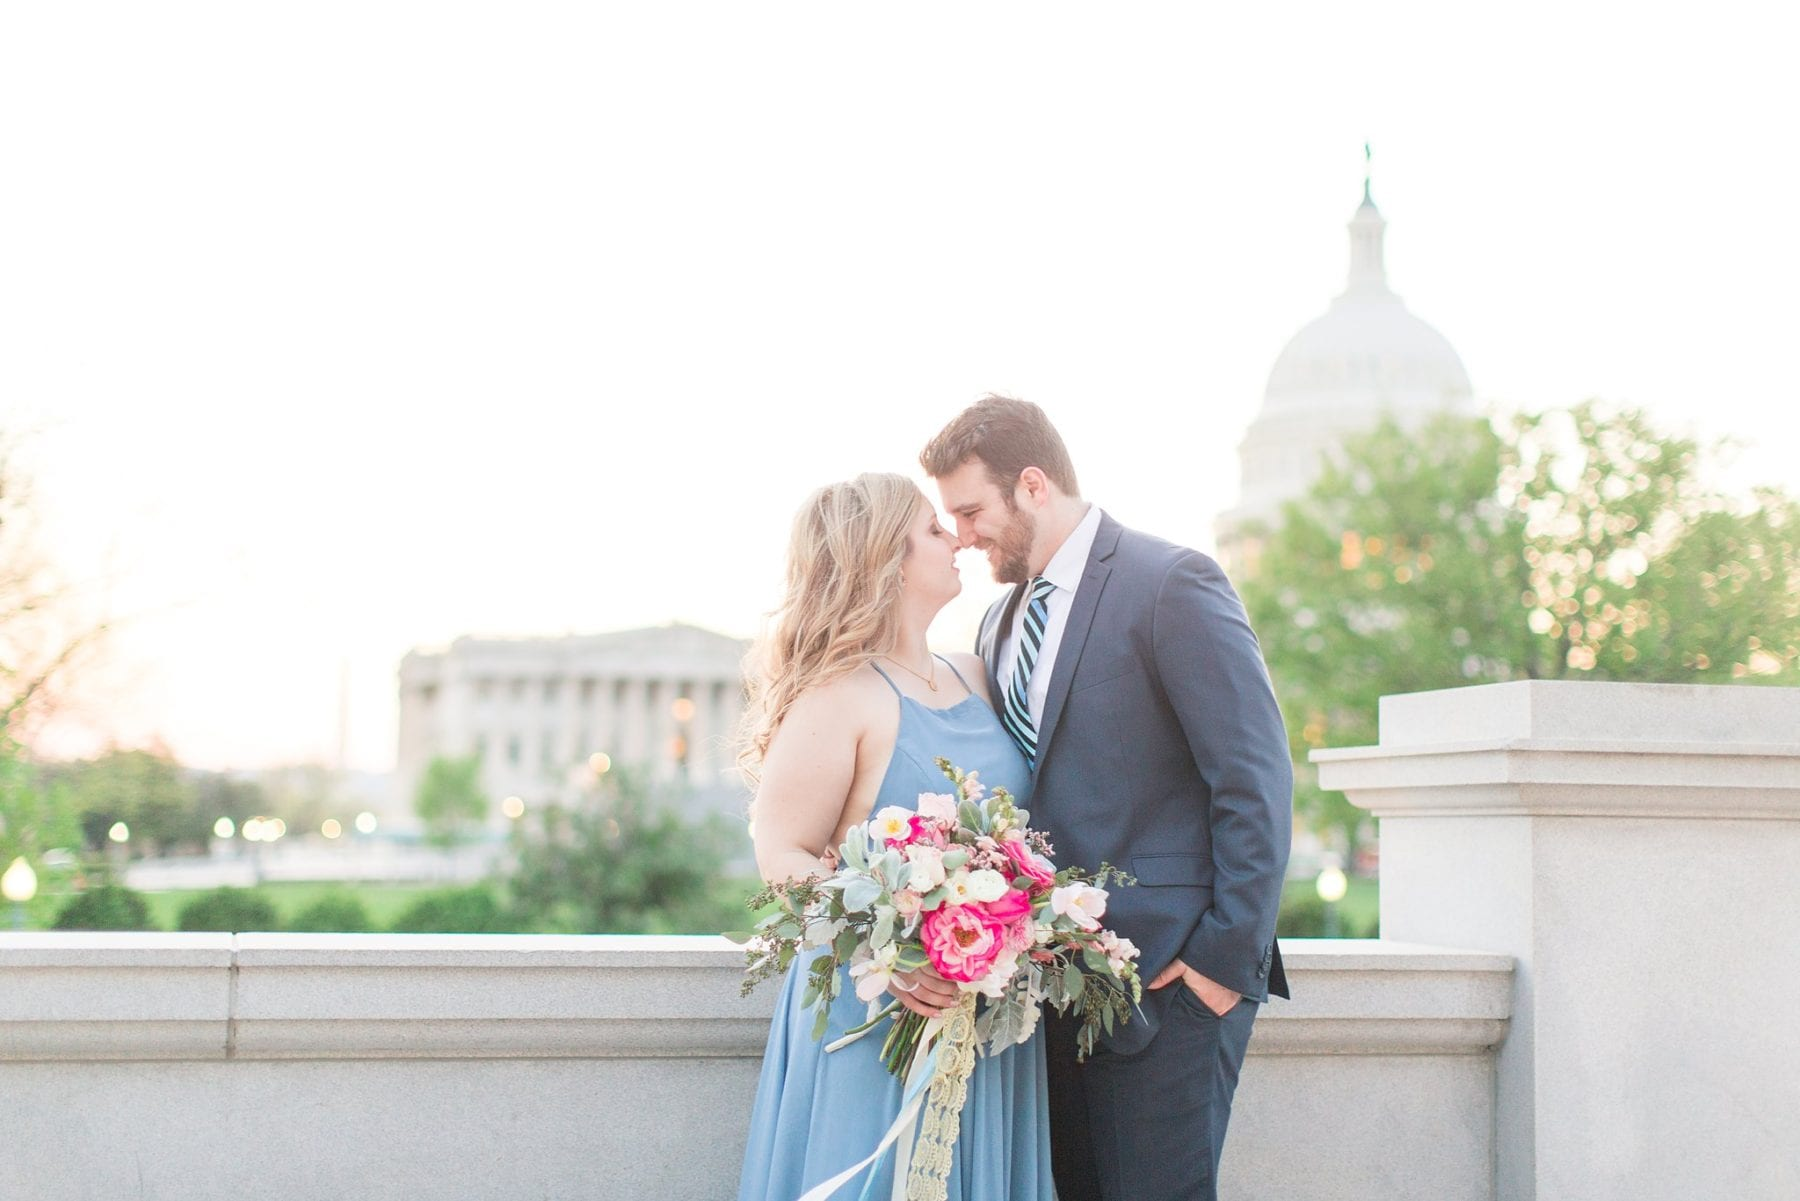 Capitol Hill Engagement Photos Kelly & Zach Washington DC Wedding Photographer Megan Kelsey Photography-365.jpg